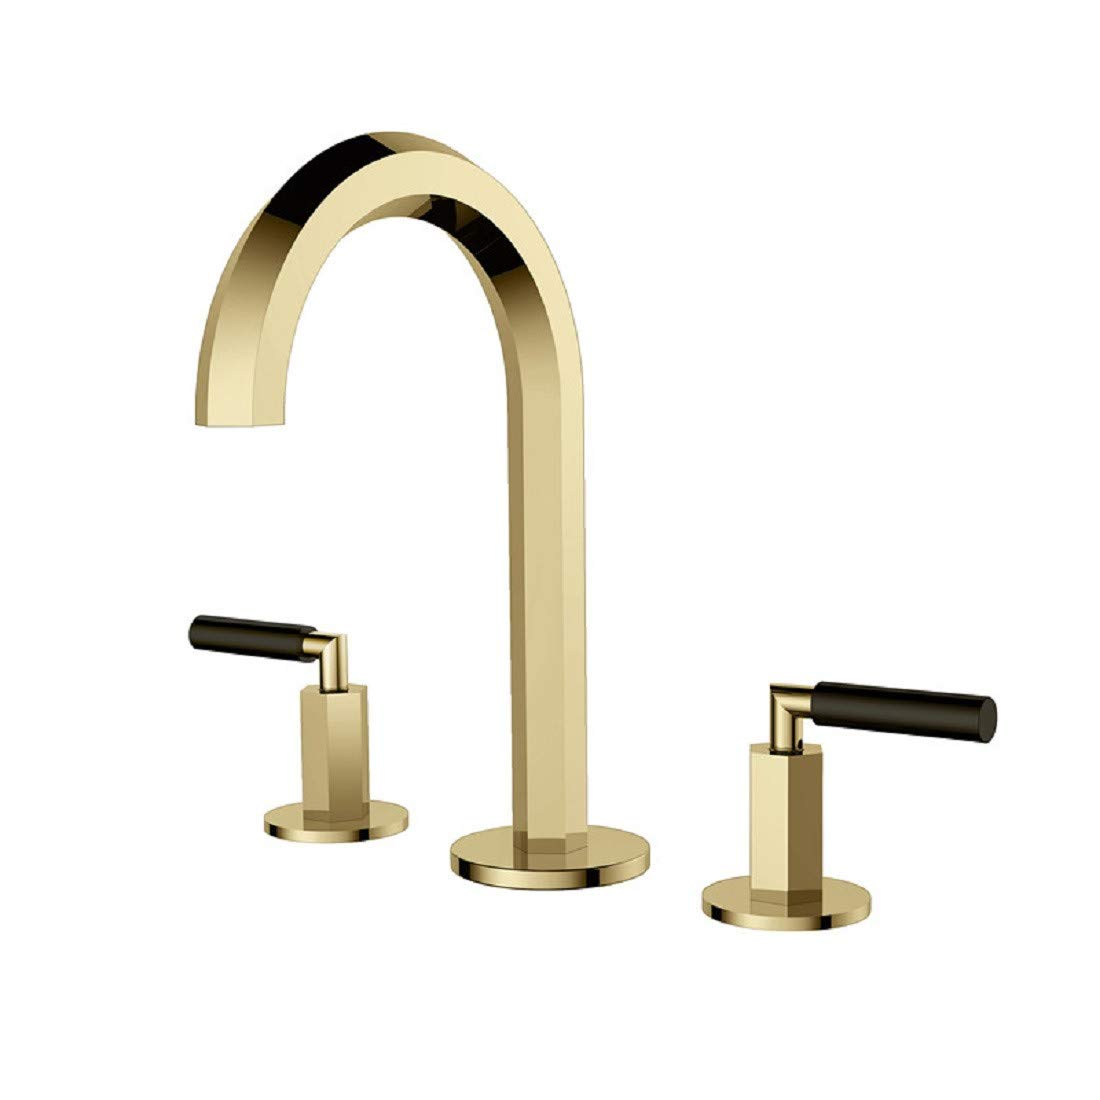 Bathroom Taps Basin Faucet Bathroom Three Hole Hot and Cold Water Faucet Bathroom Sink Tap Basin Sink Mixer Tap